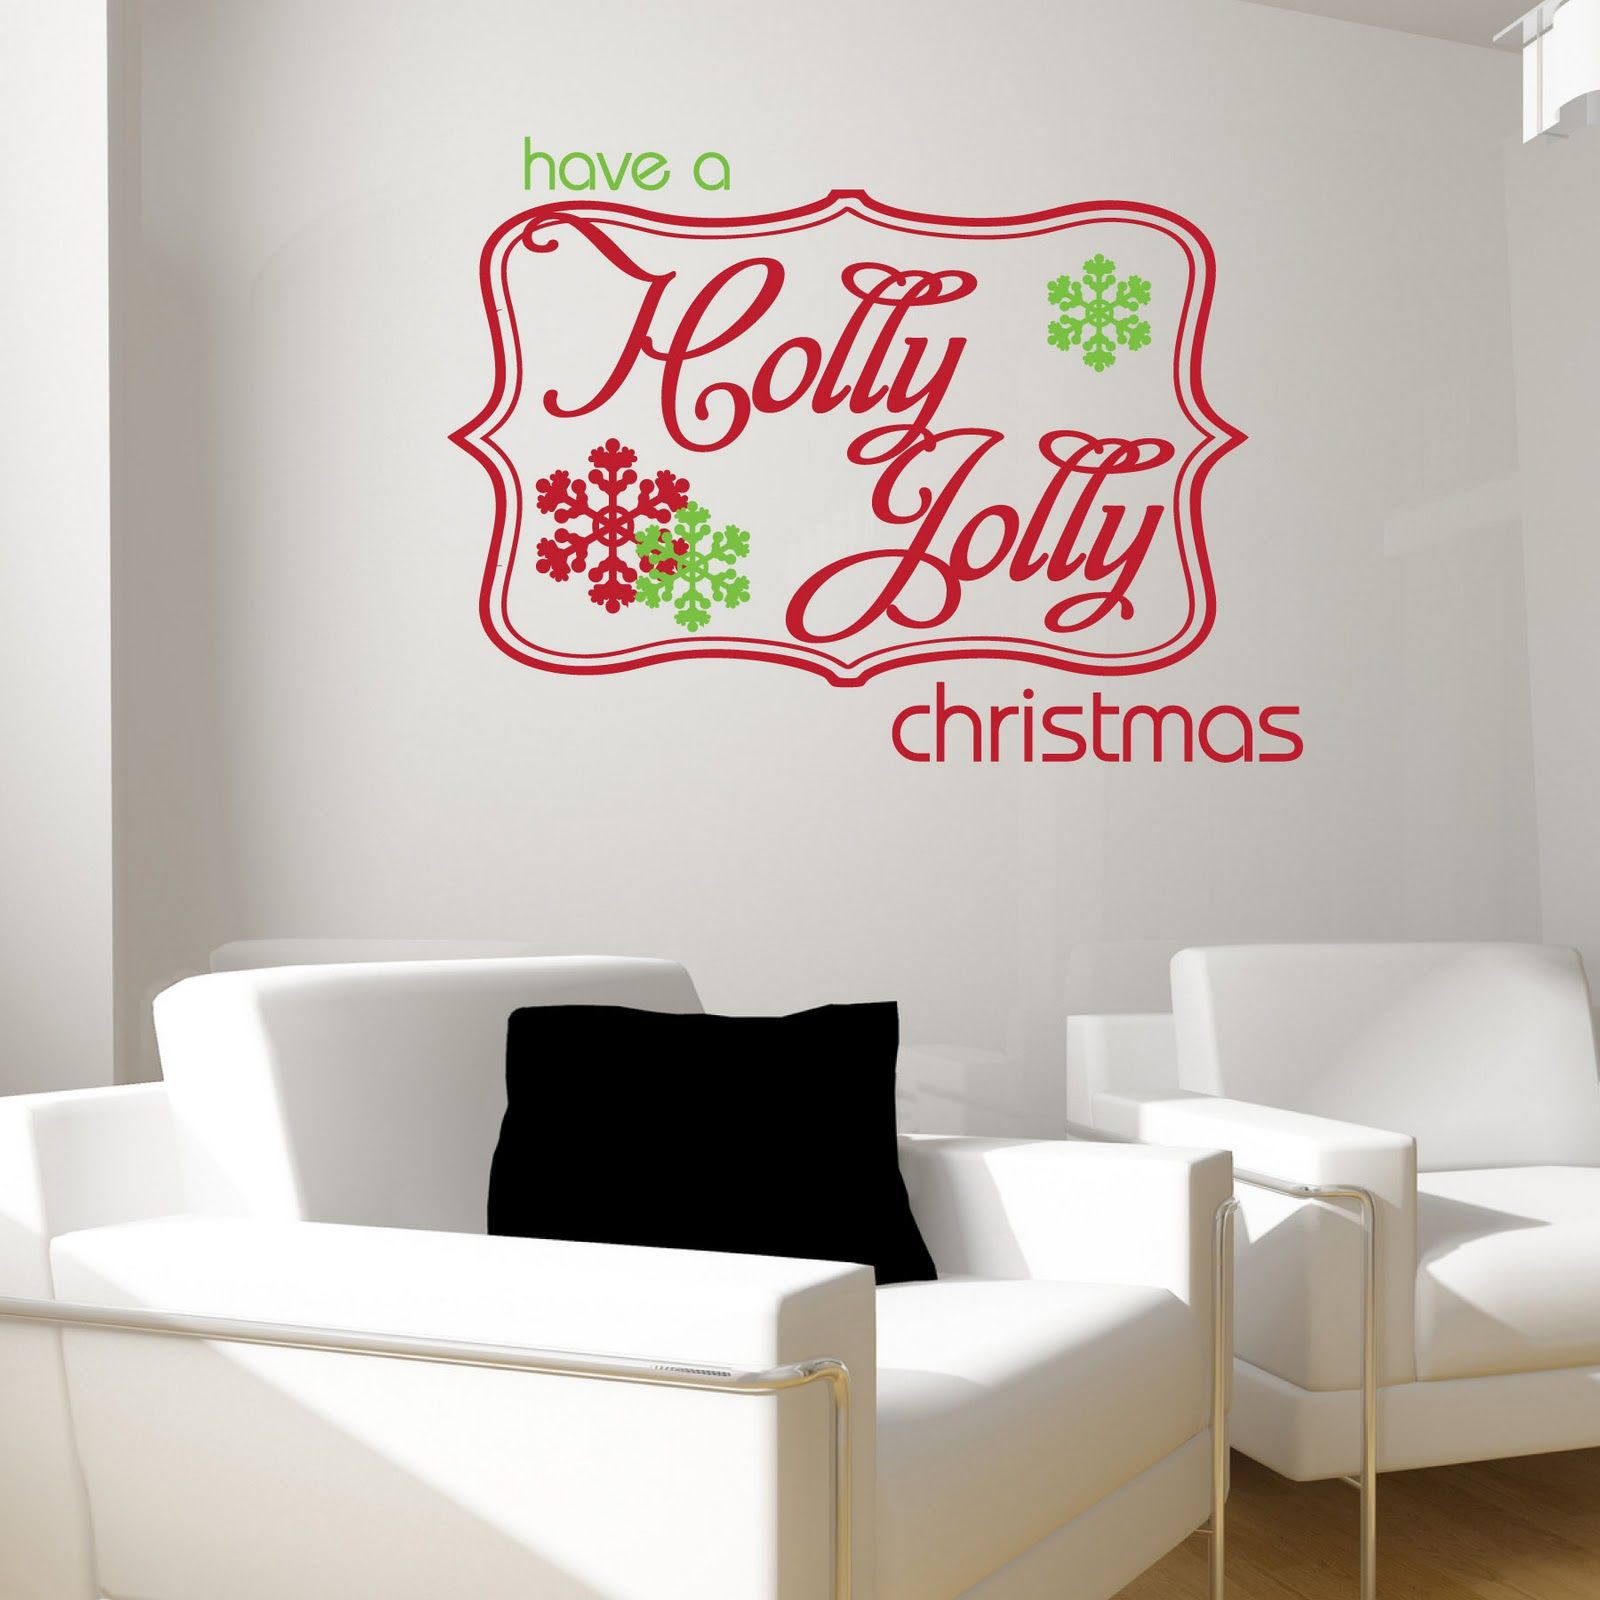 christmas wall decals - Google Search